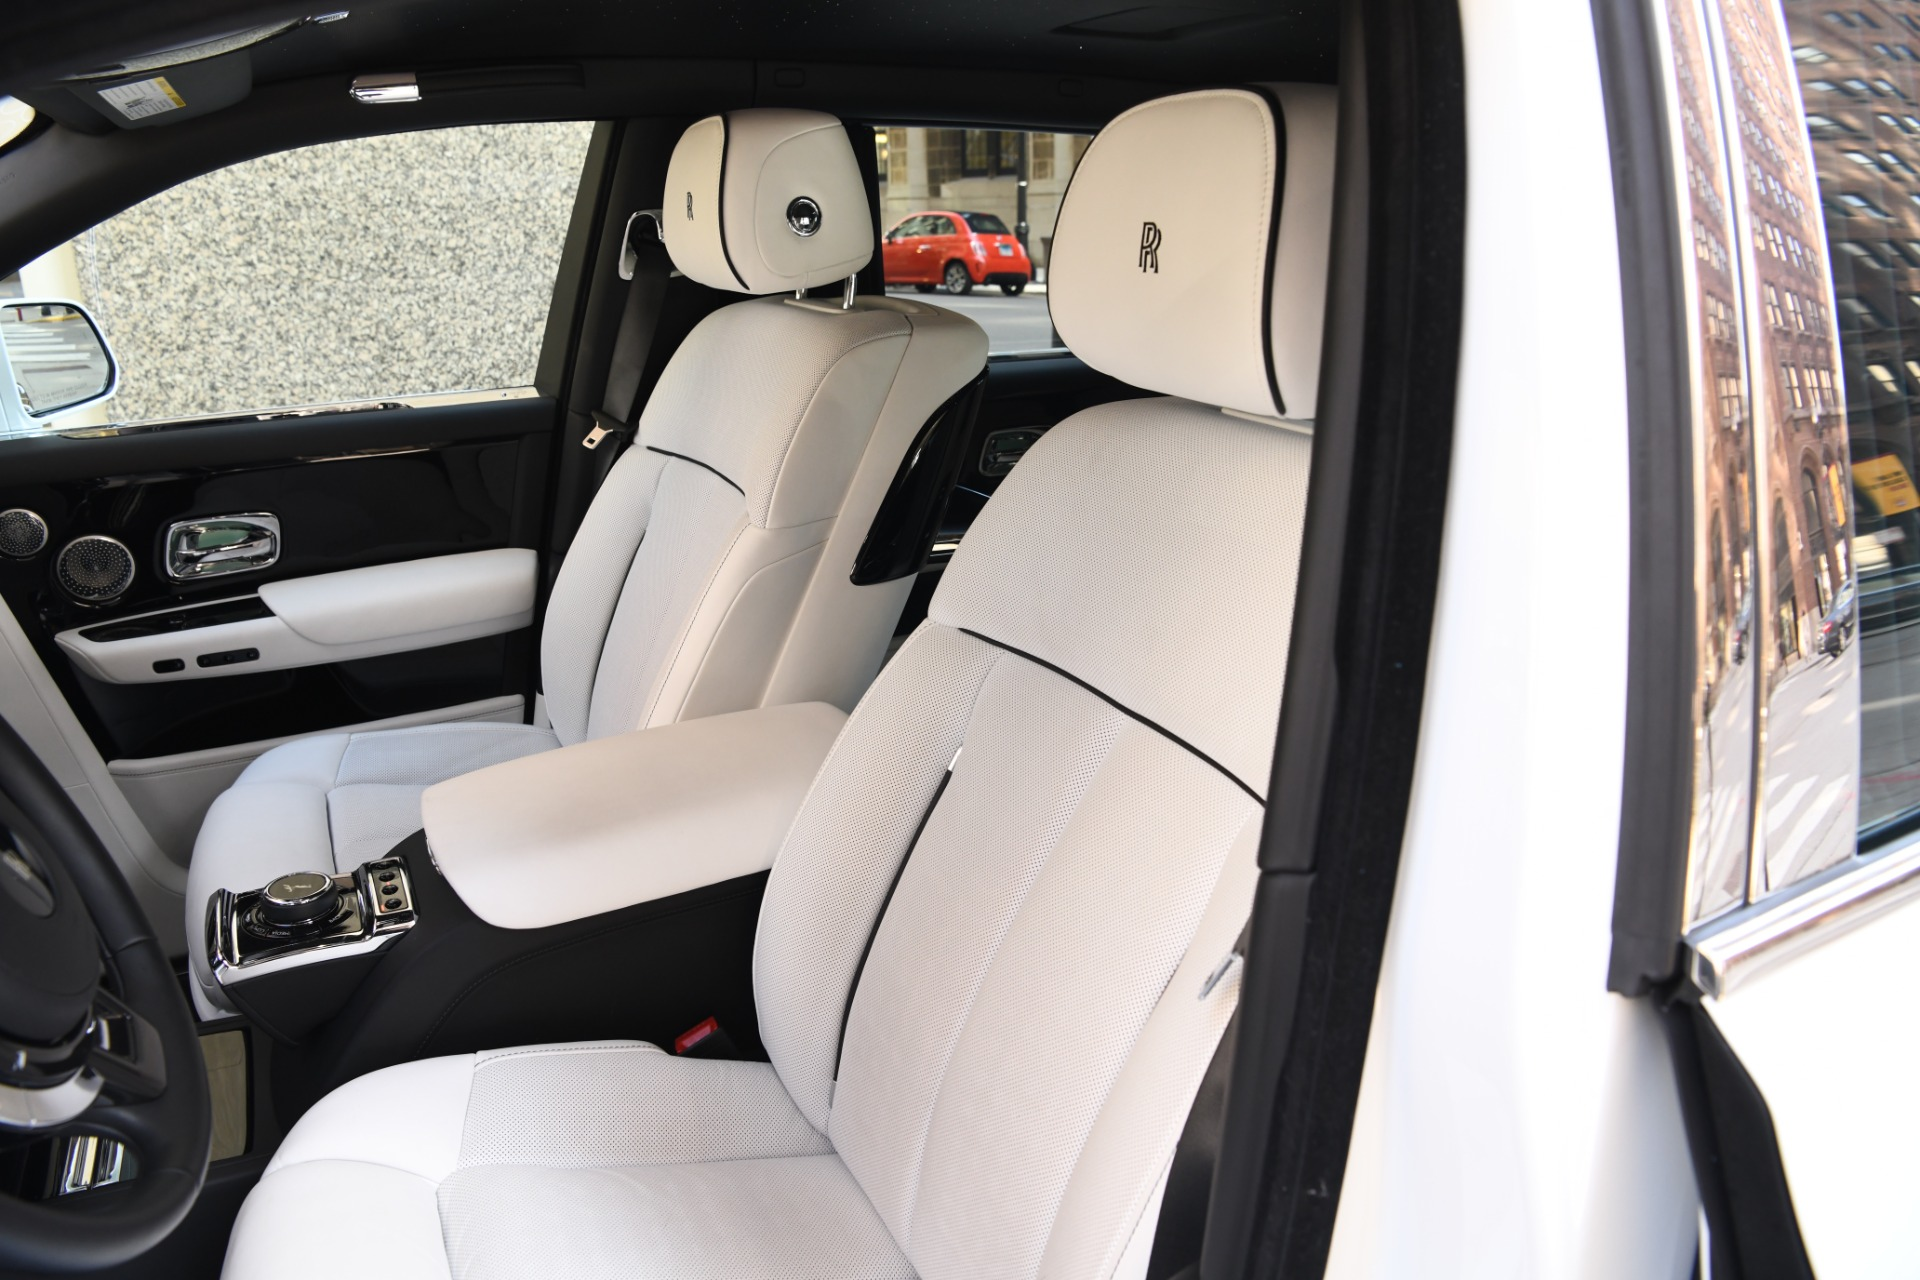 New 2020 Rolls-Royce Phantom Extended Wheelbase EWB | Chicago, IL